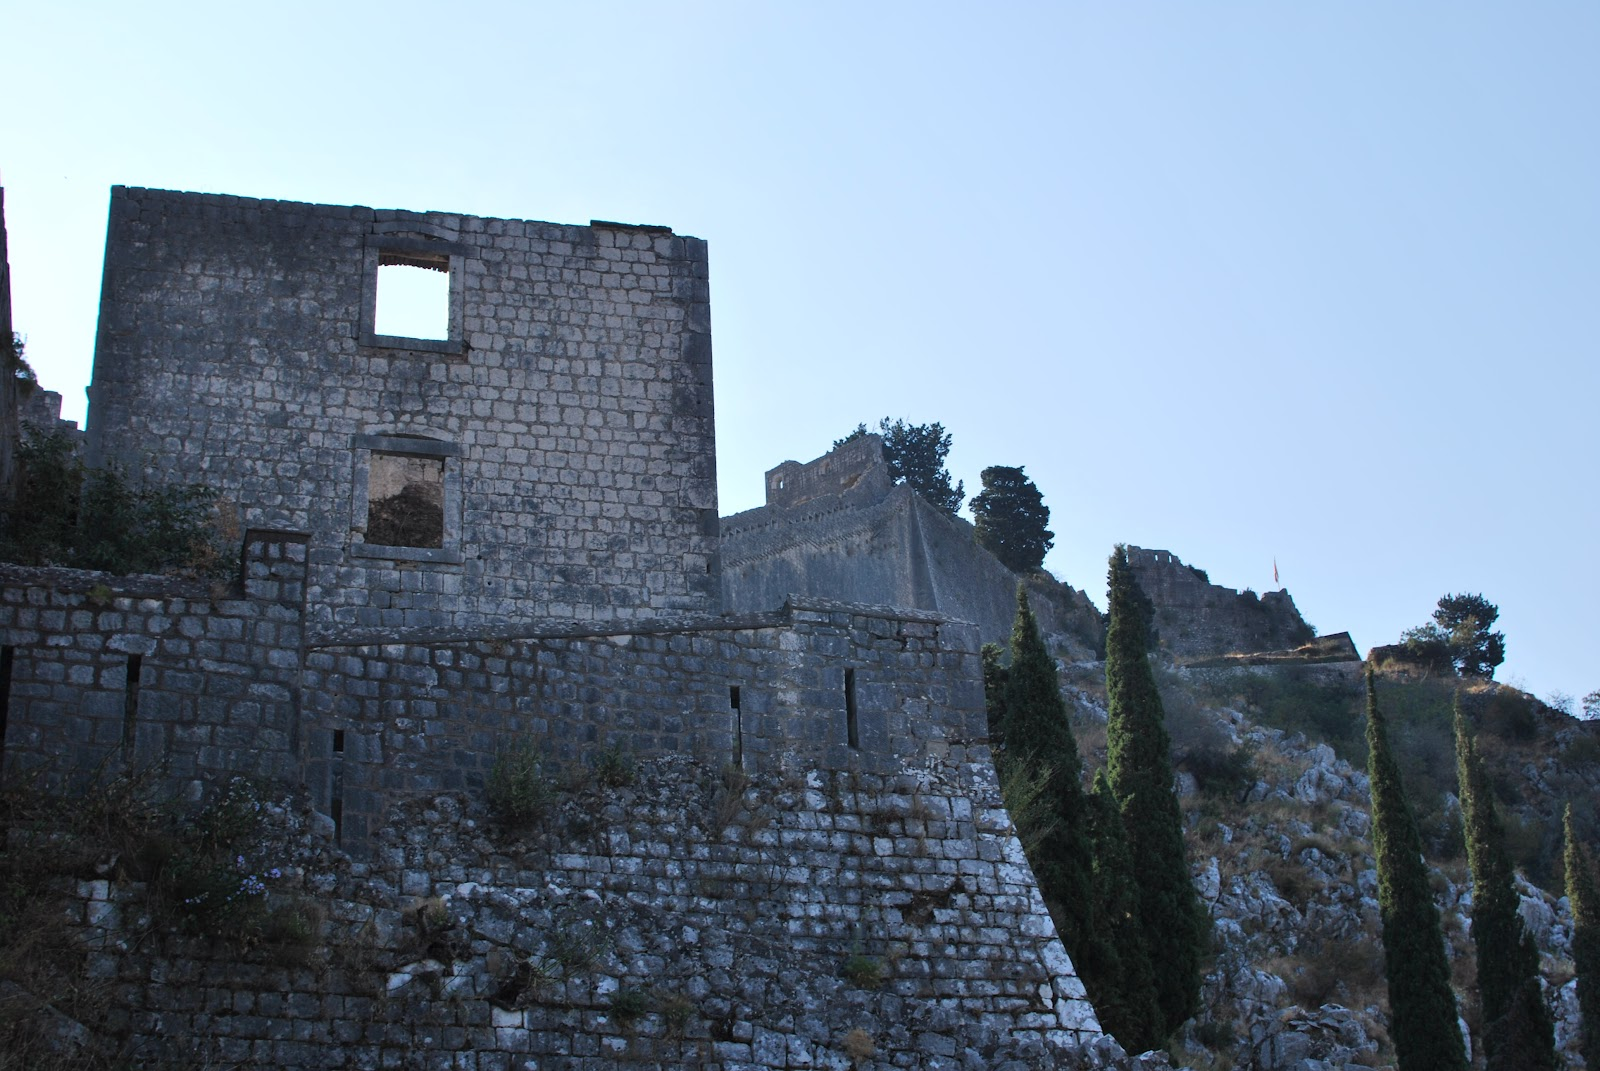 One of the many ruined Bastions that are built into the walls